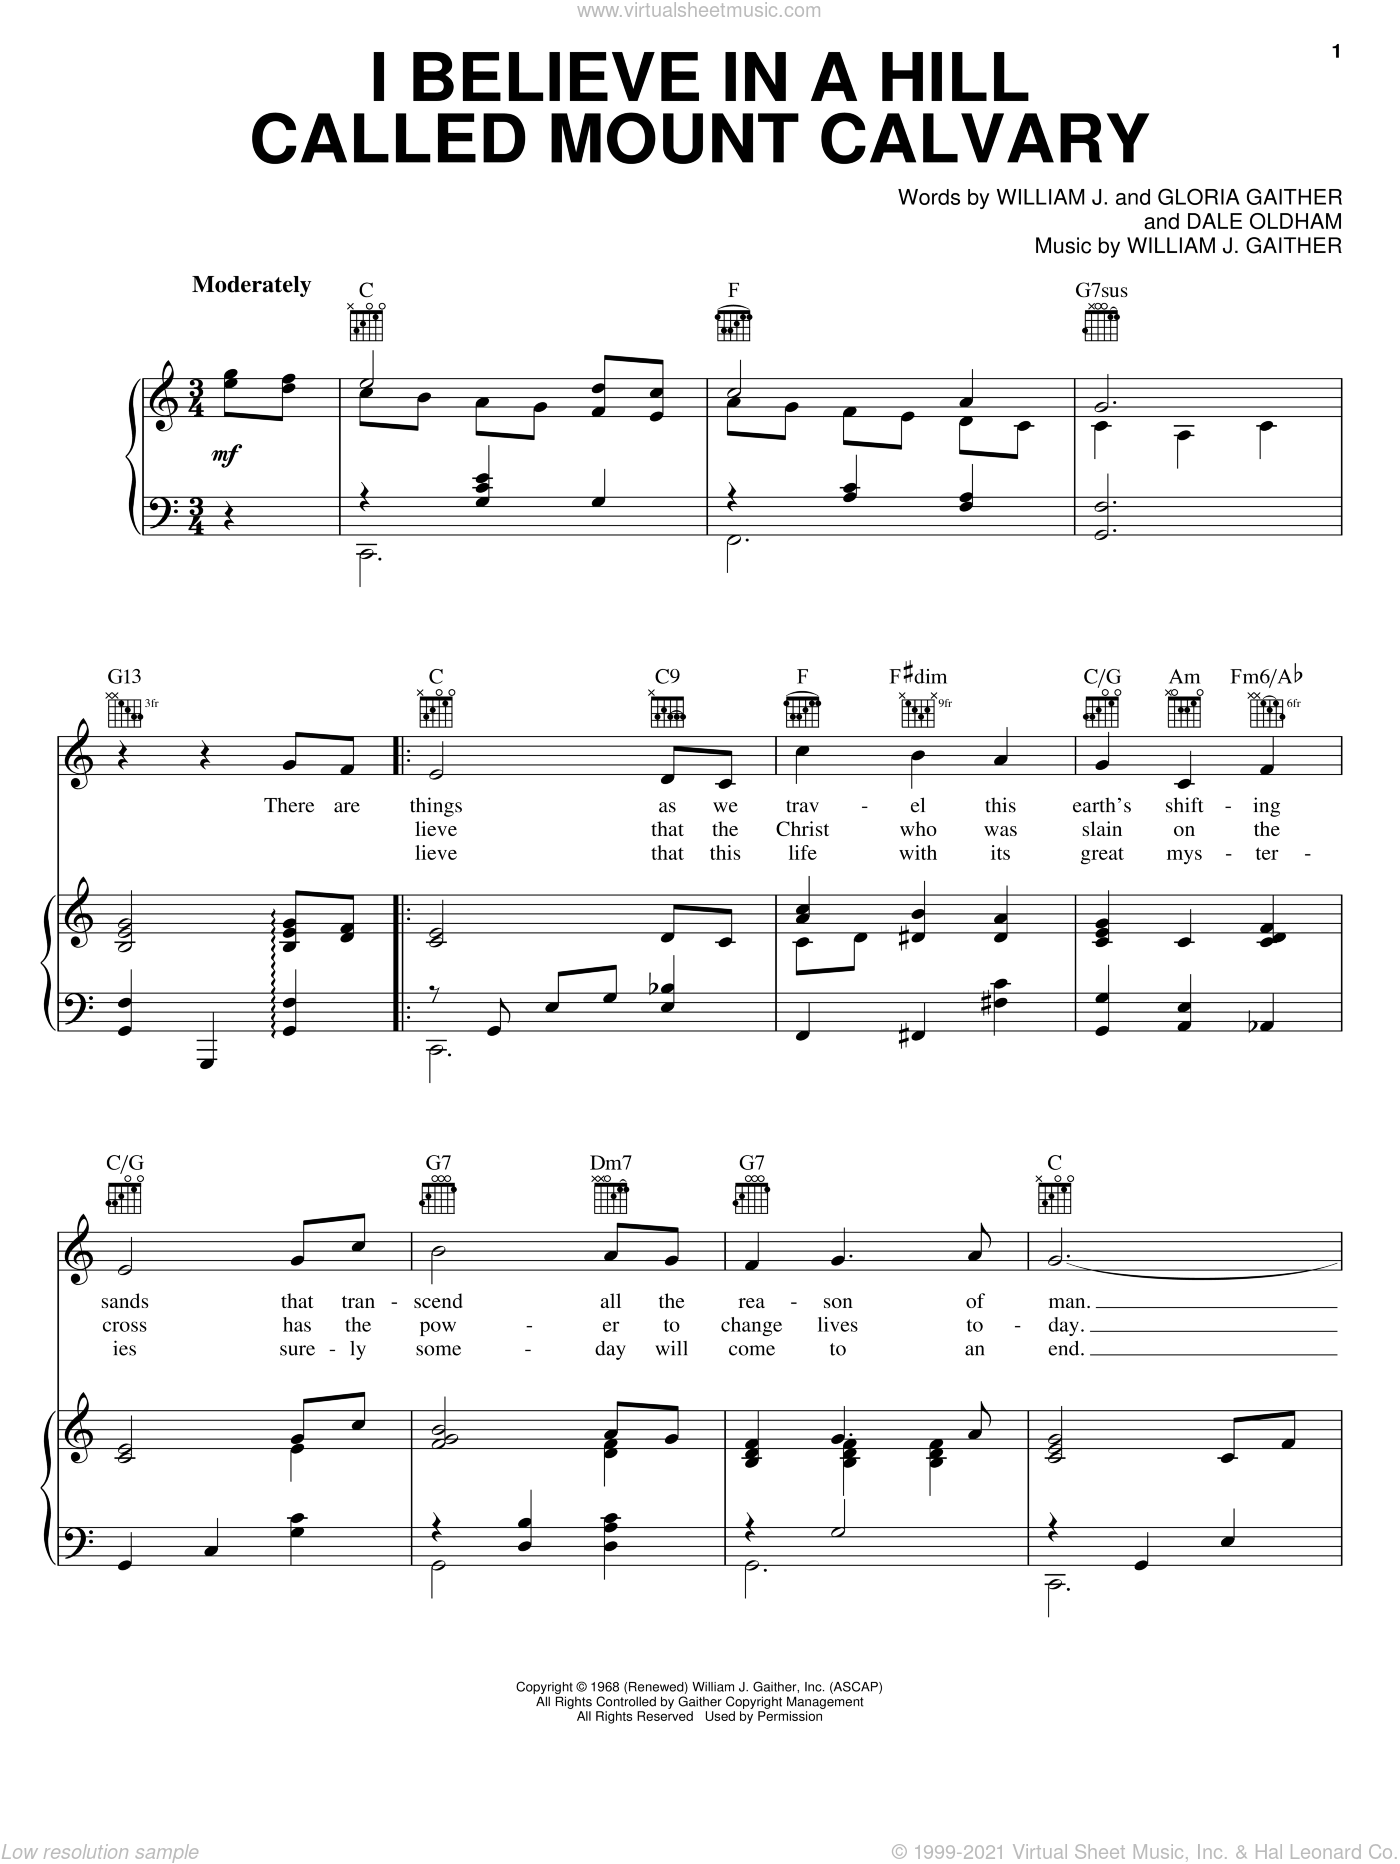 I Believe In A Hill Called Mount Calvary sheet music for voice, piano or guitar by Bill & Gloria Gaither, Bill Gaither, Dale Oldham, Gloria Gaither and William J. Gaither, intermediate skill level